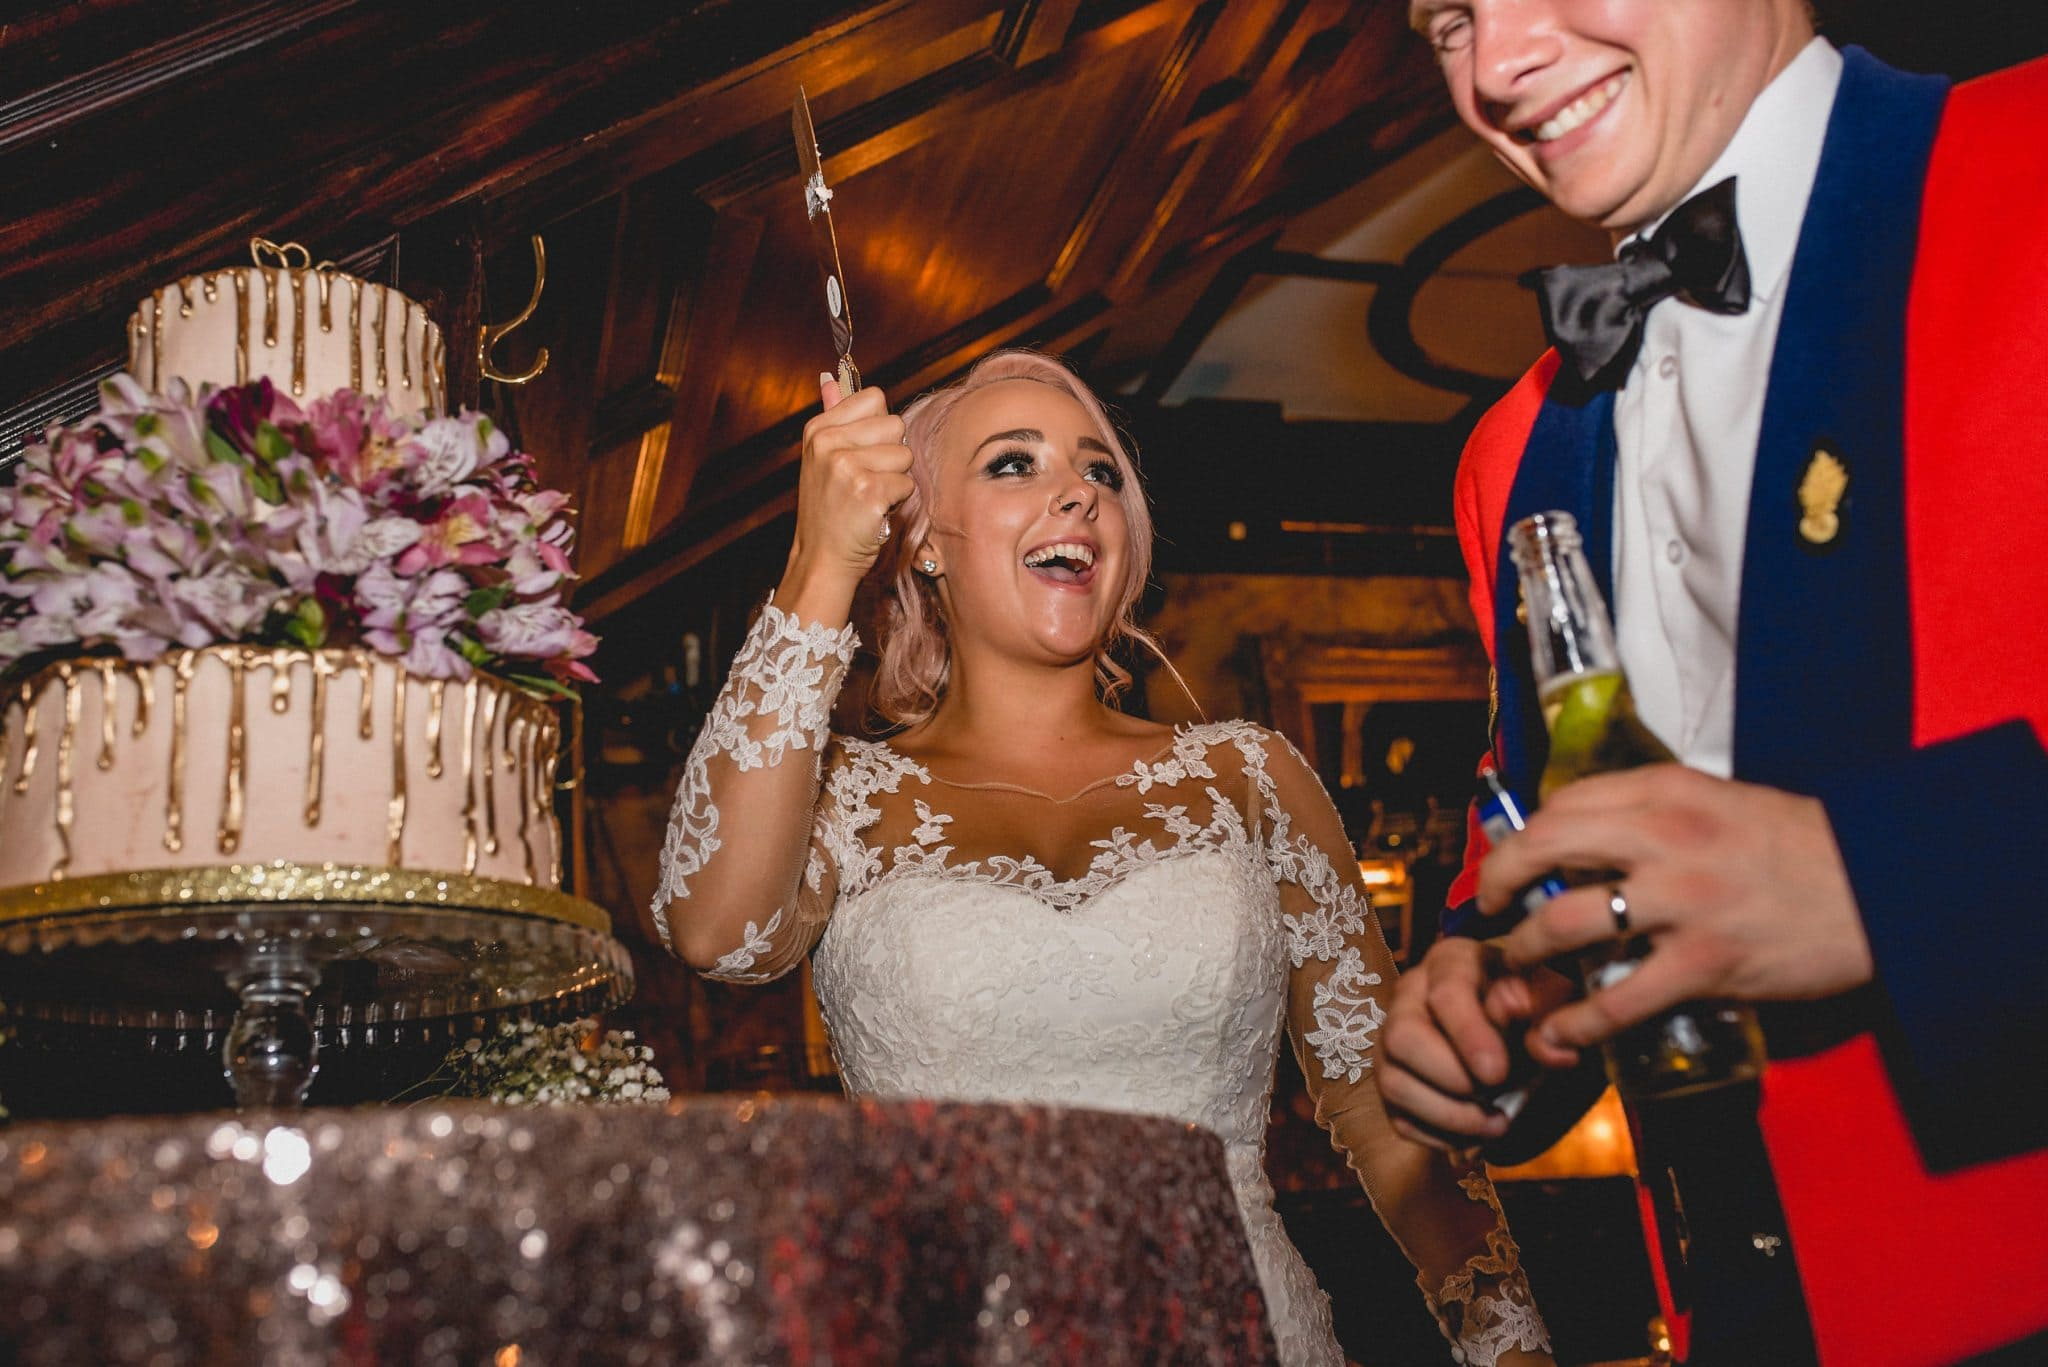 Bride brandishes knife and giggles as she prepares to cut the cake. Cake is adorned with flowers and a gold drip.